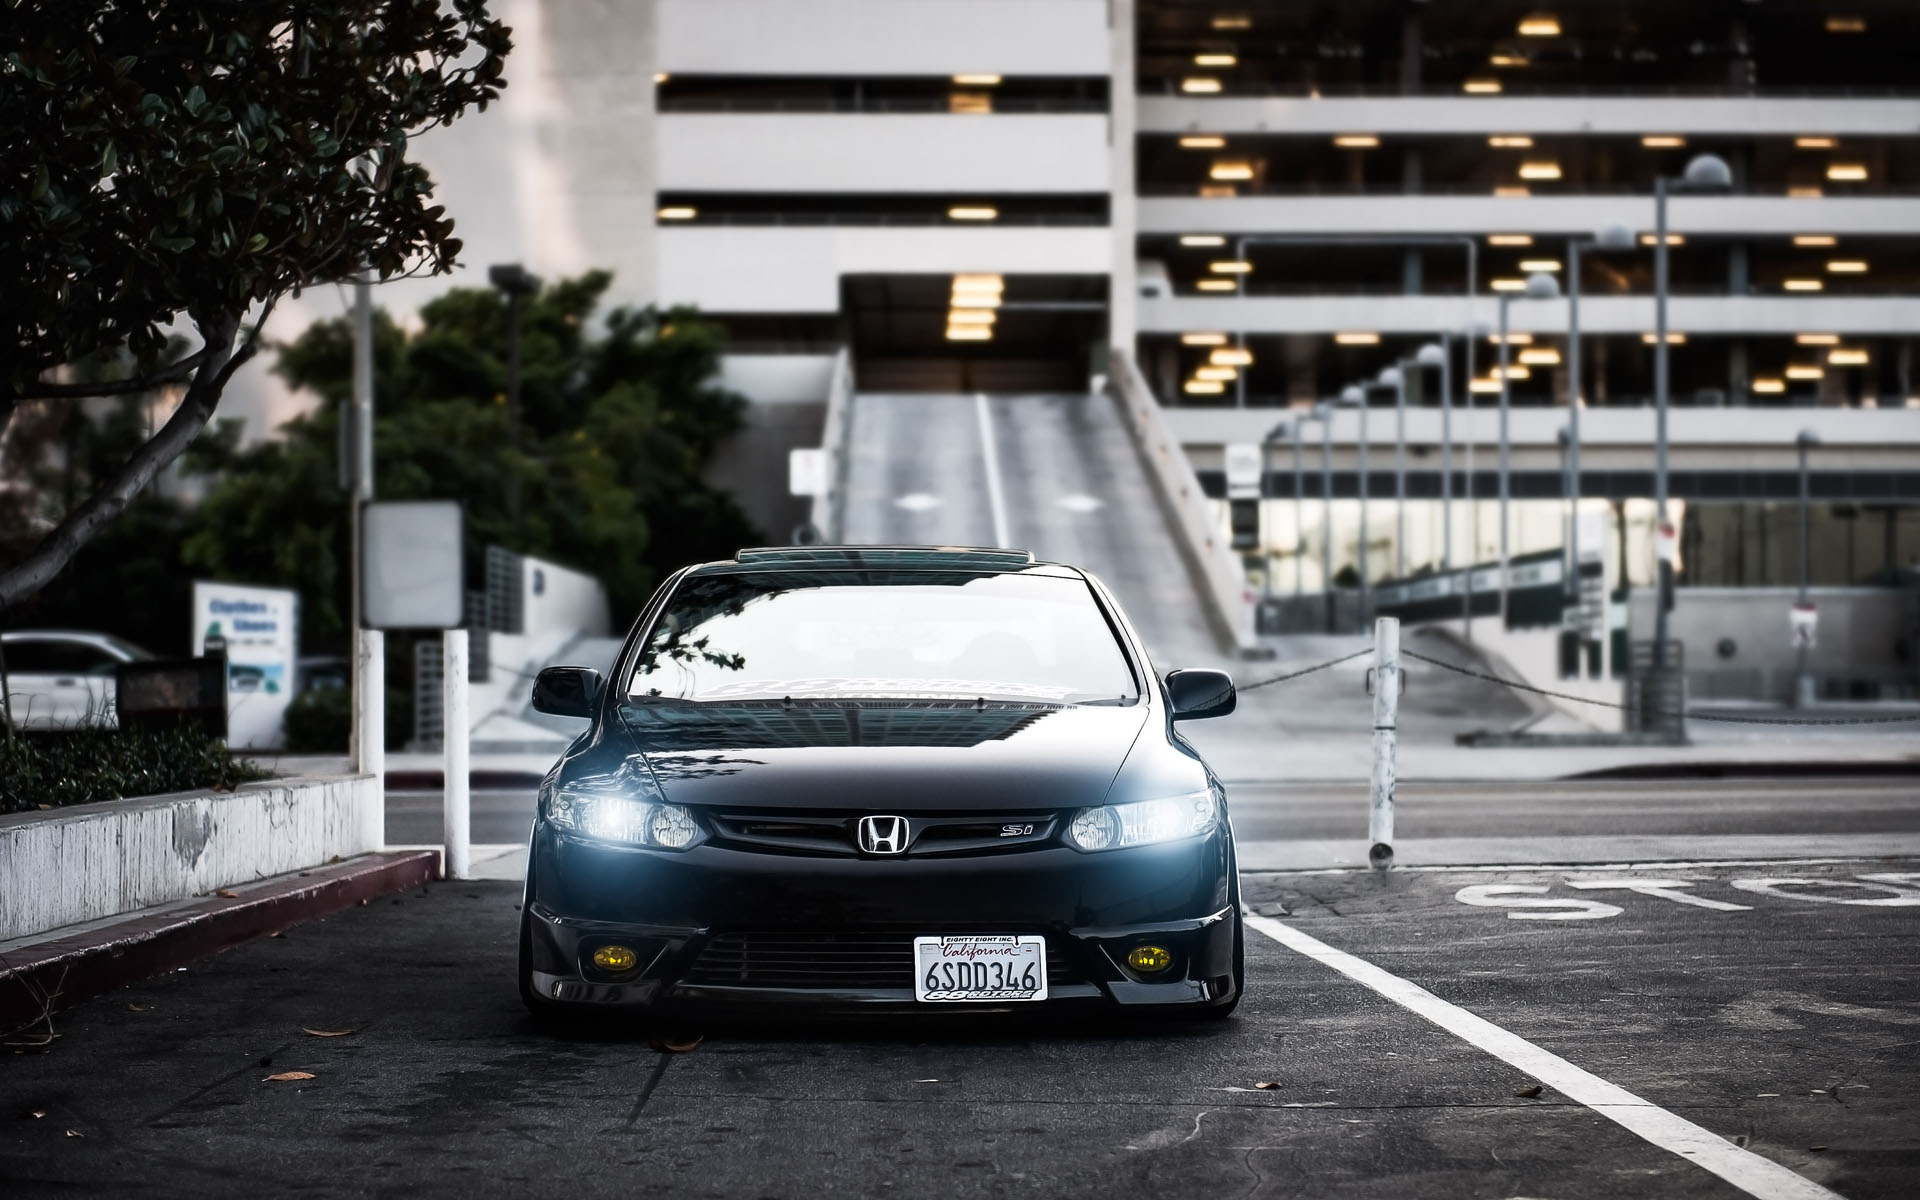 honda civic si hd wallpaper | hd latest wallpapers